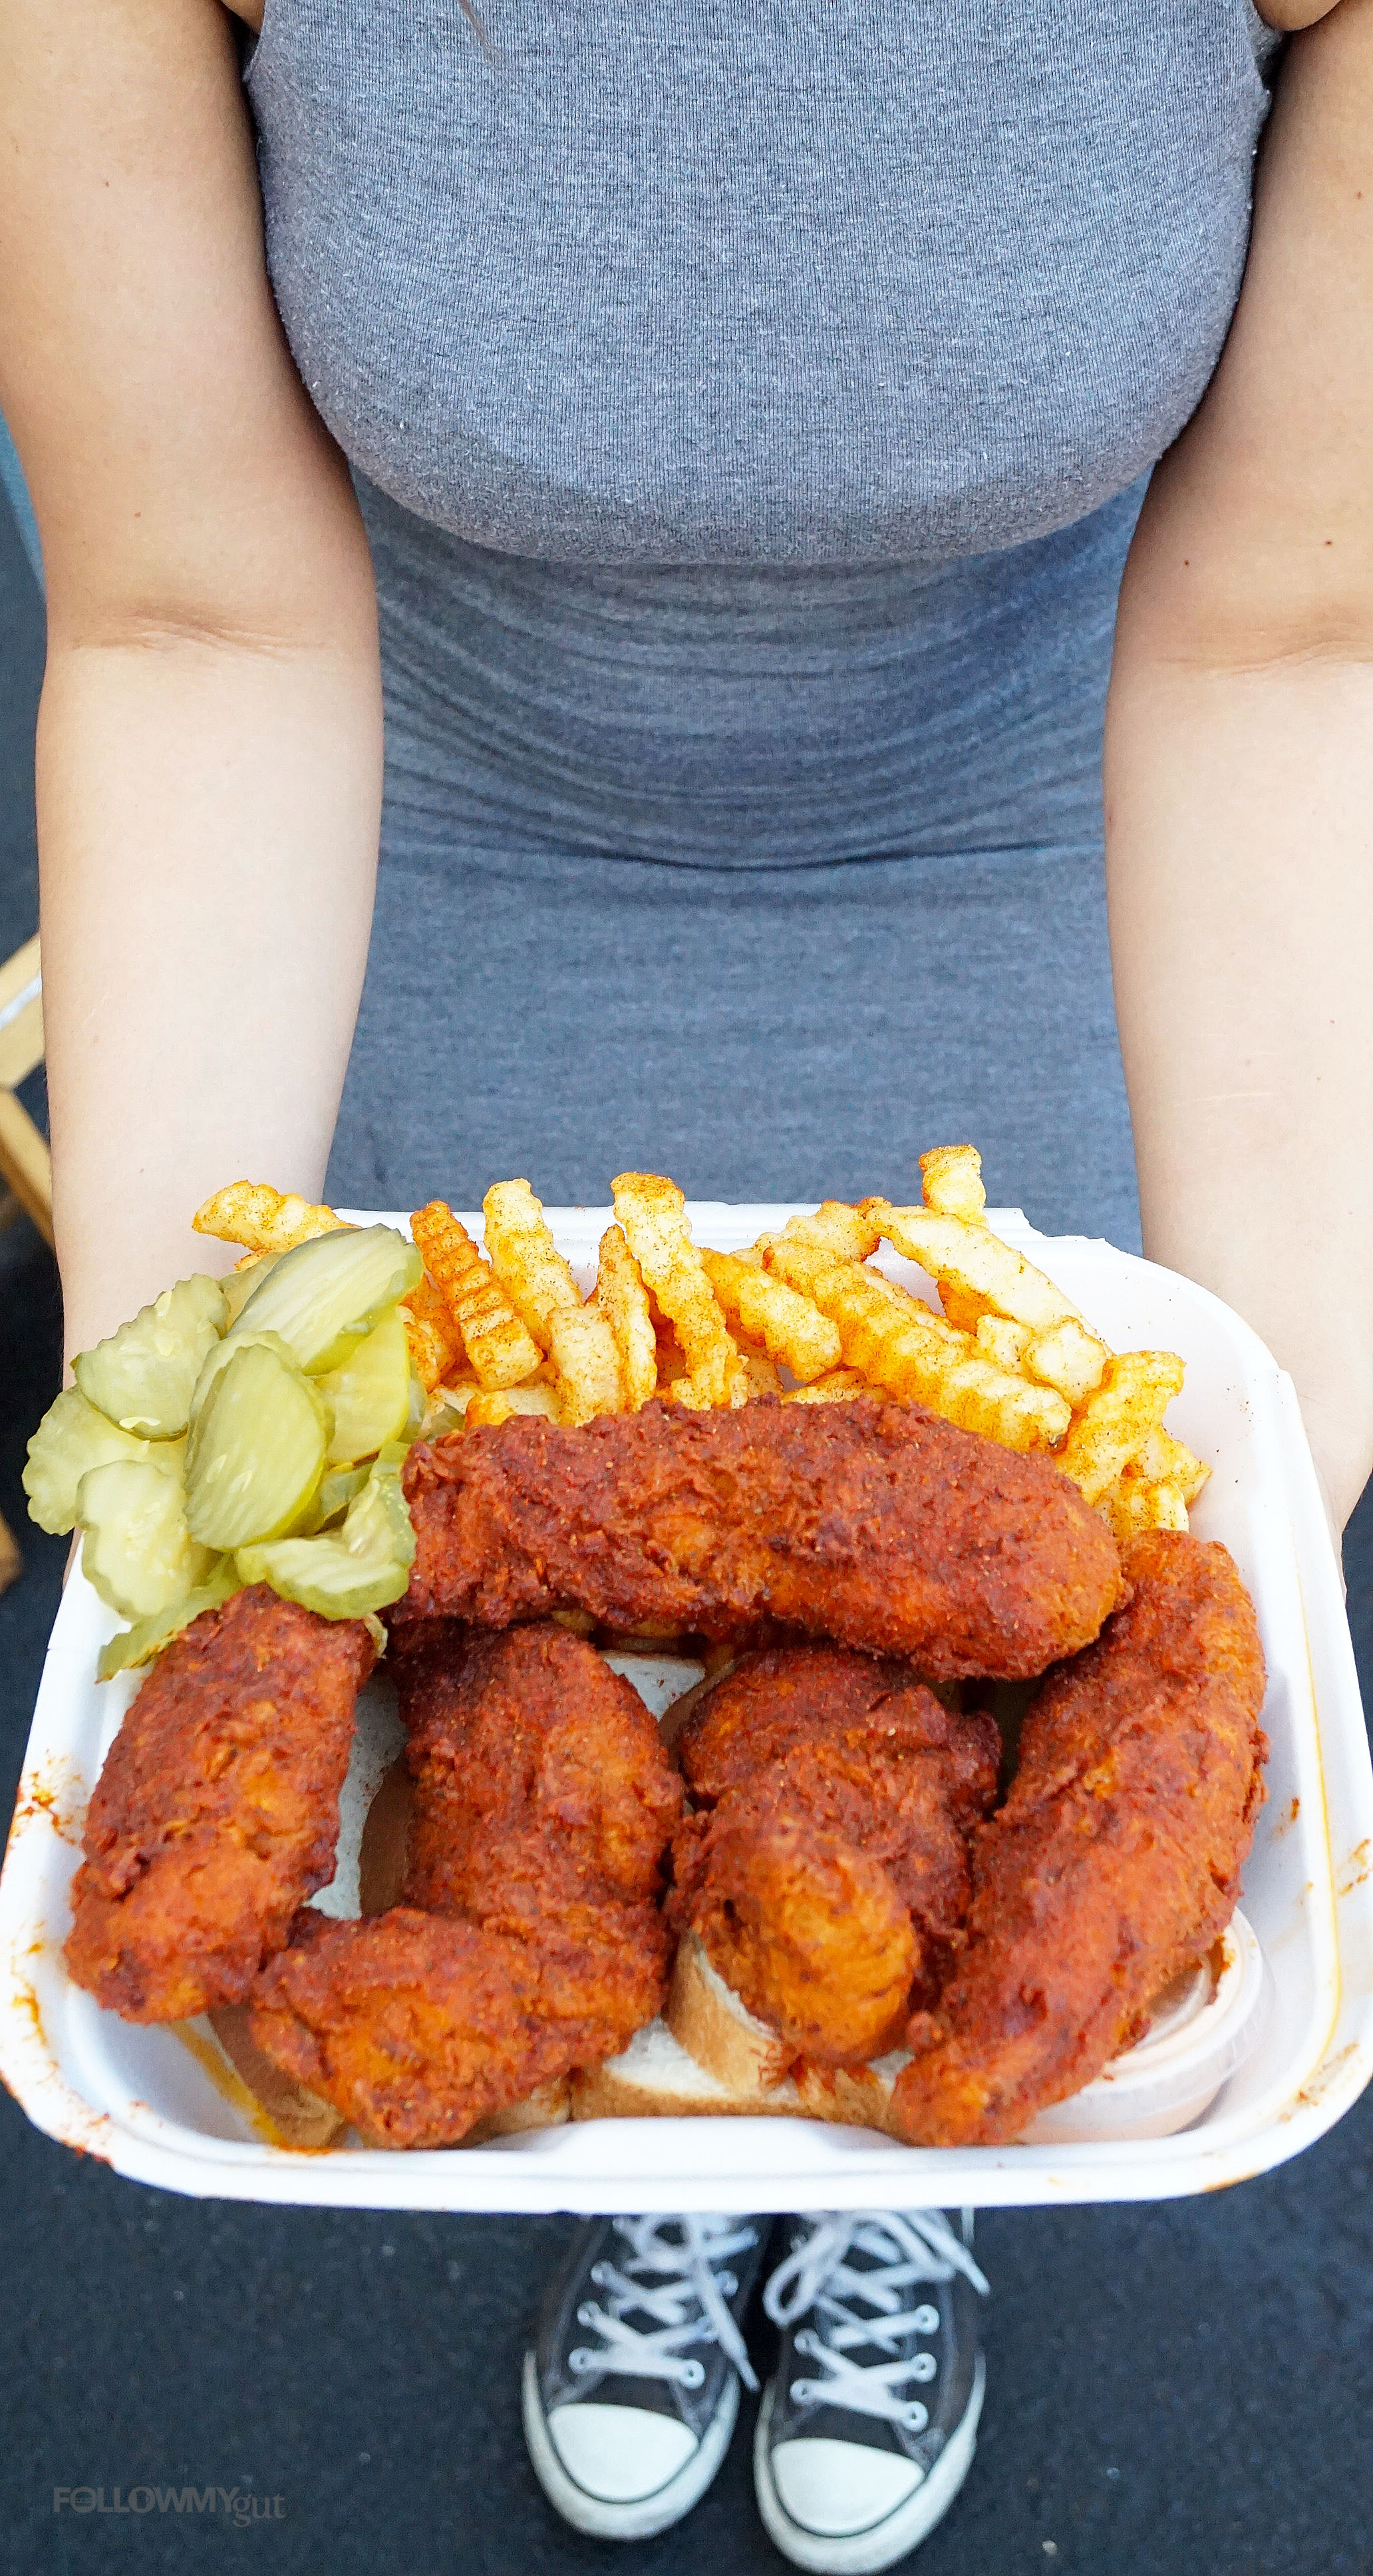 Dave's Hot Chicken: Late Night Hot Chicken to Devour Before